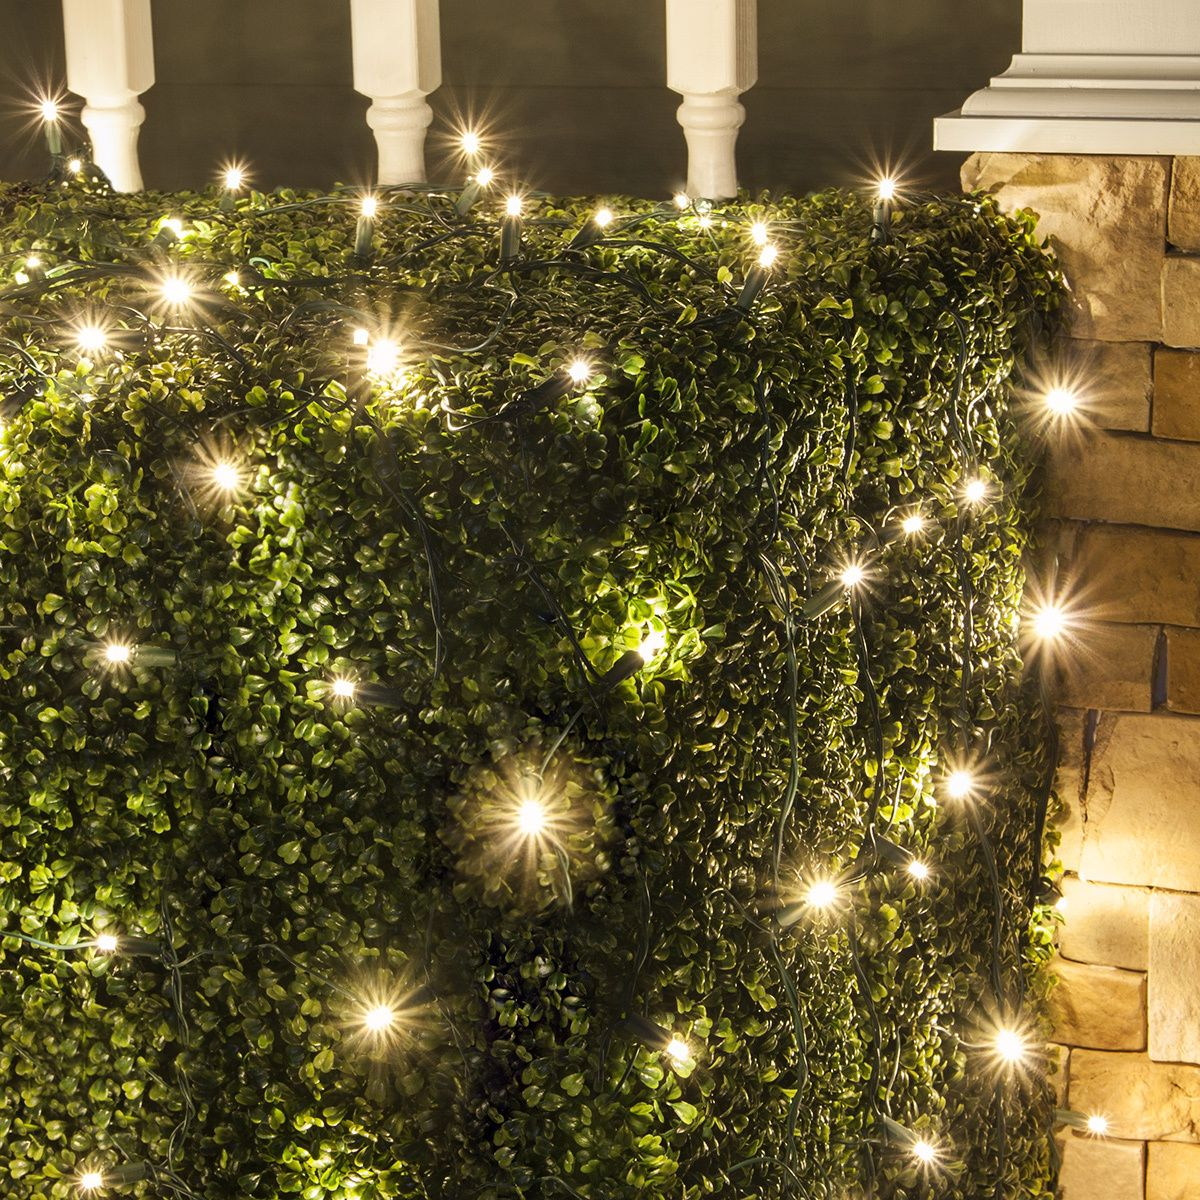 5mm 4x6 twinkle warm white led net lights green wire net lights easy to use led net lights with warm white bulbs on a x net on a green wire led net lights and trunk wraps give outdoor christmas lights a professoinal aloadofball Images